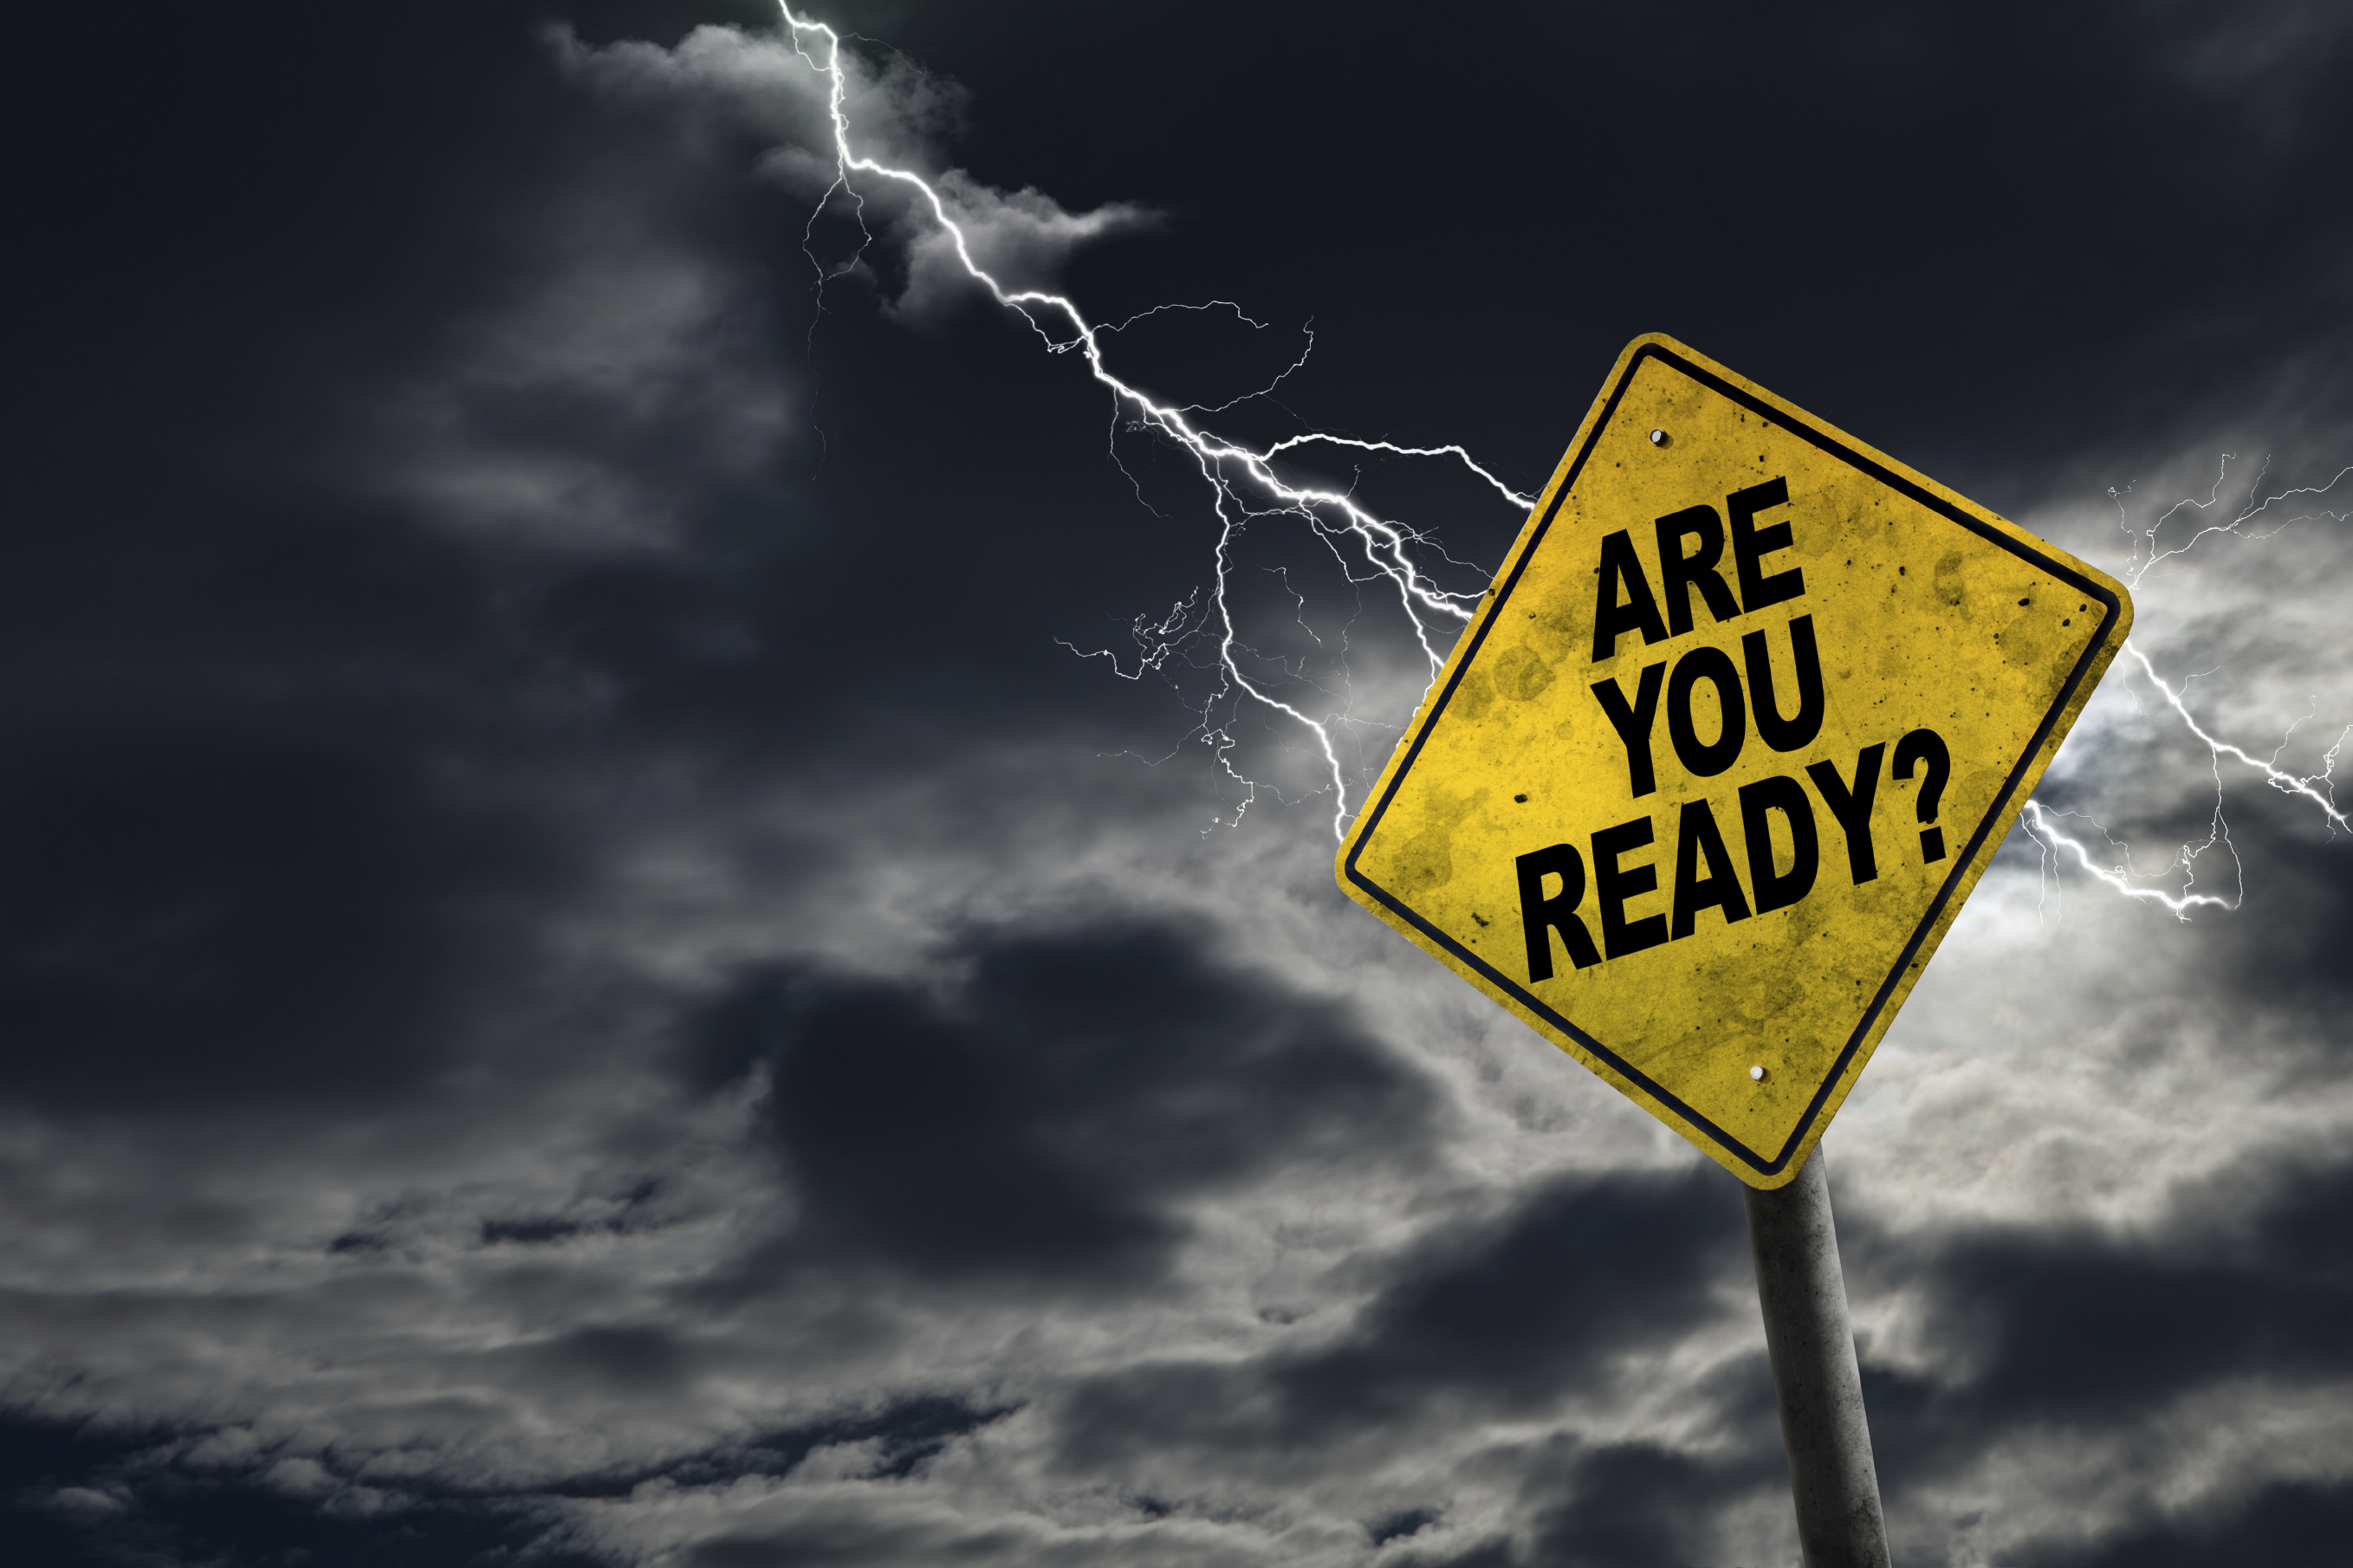 The Storms Are Coming! Are You Prepared? - The Schirm Firm